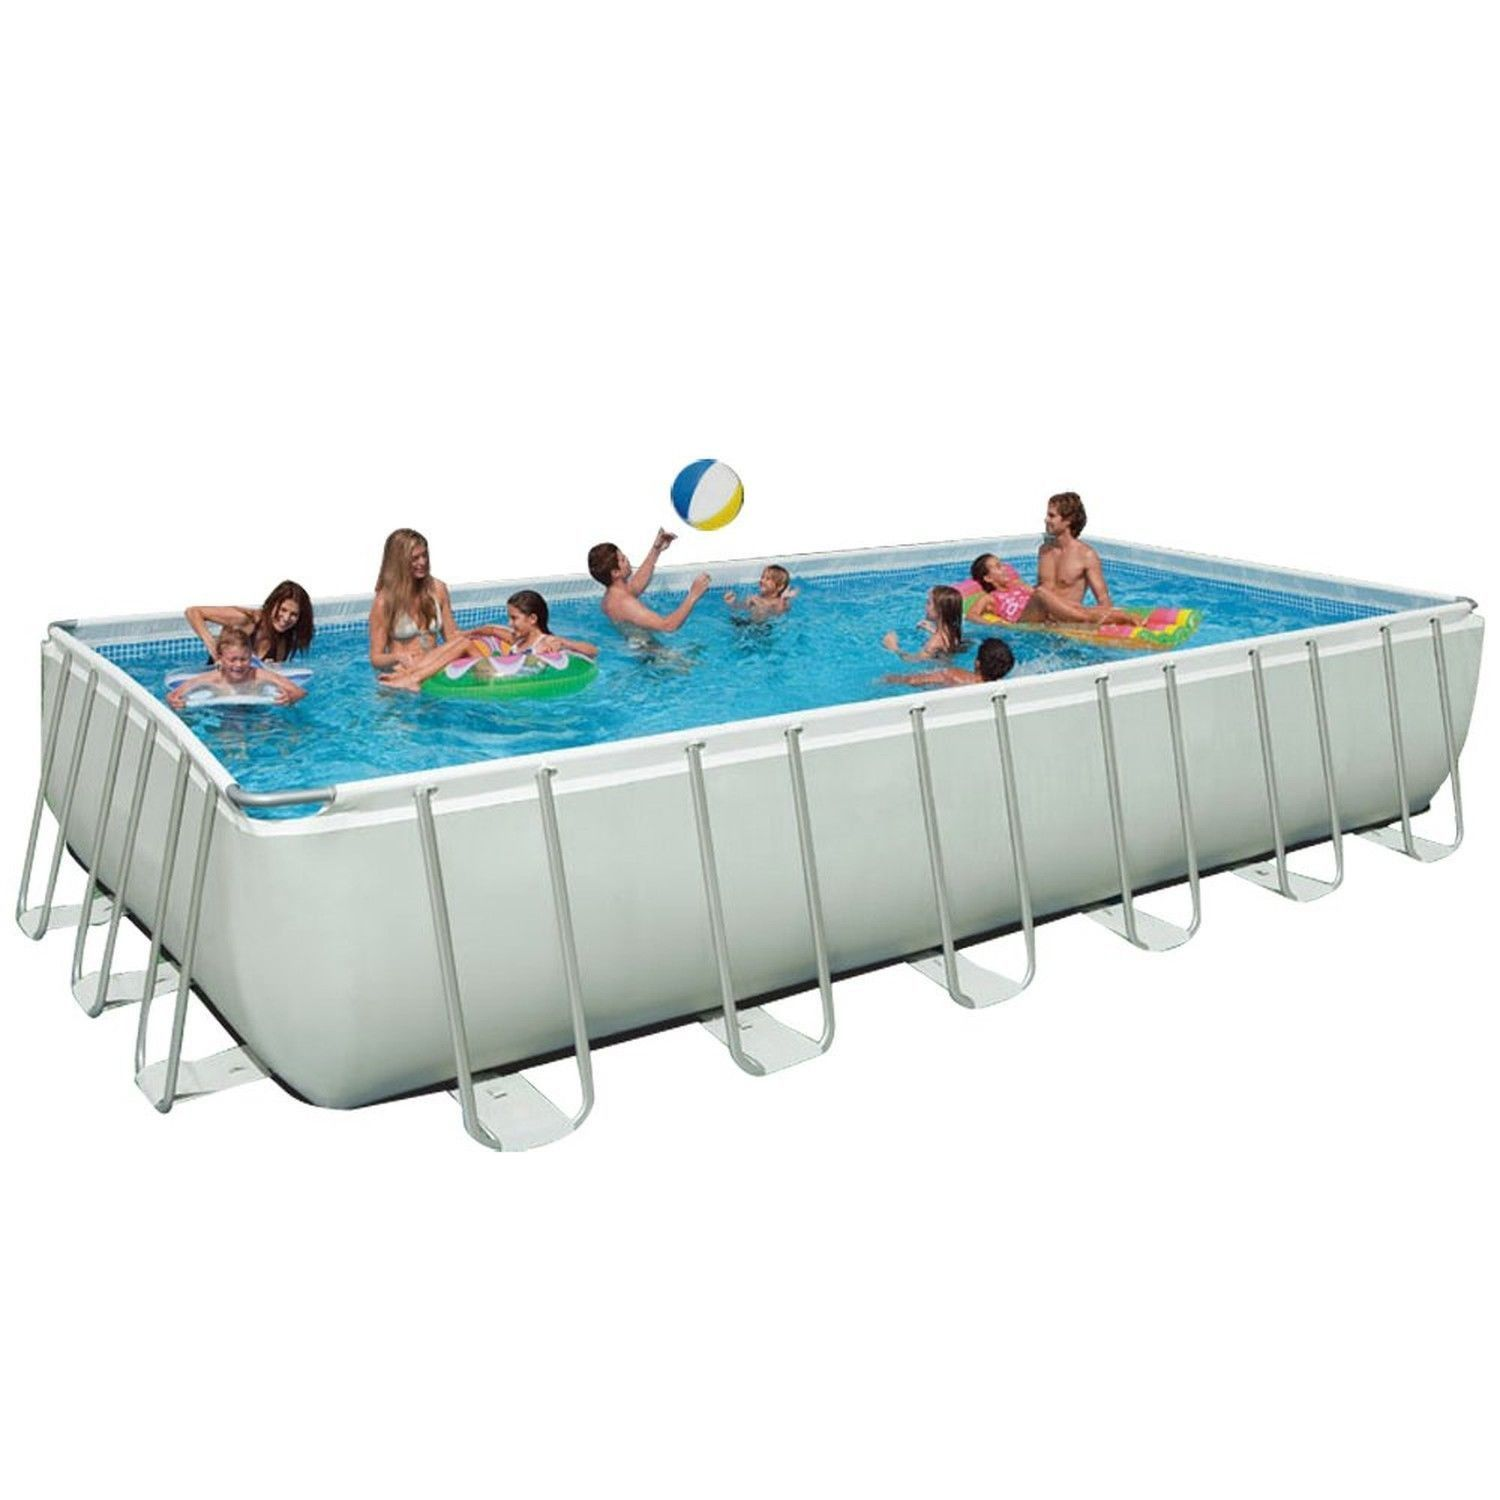 Intex 24Ft X 12Ft X 52In Ultra Frame Pool Set With Sand Filter Pump ...